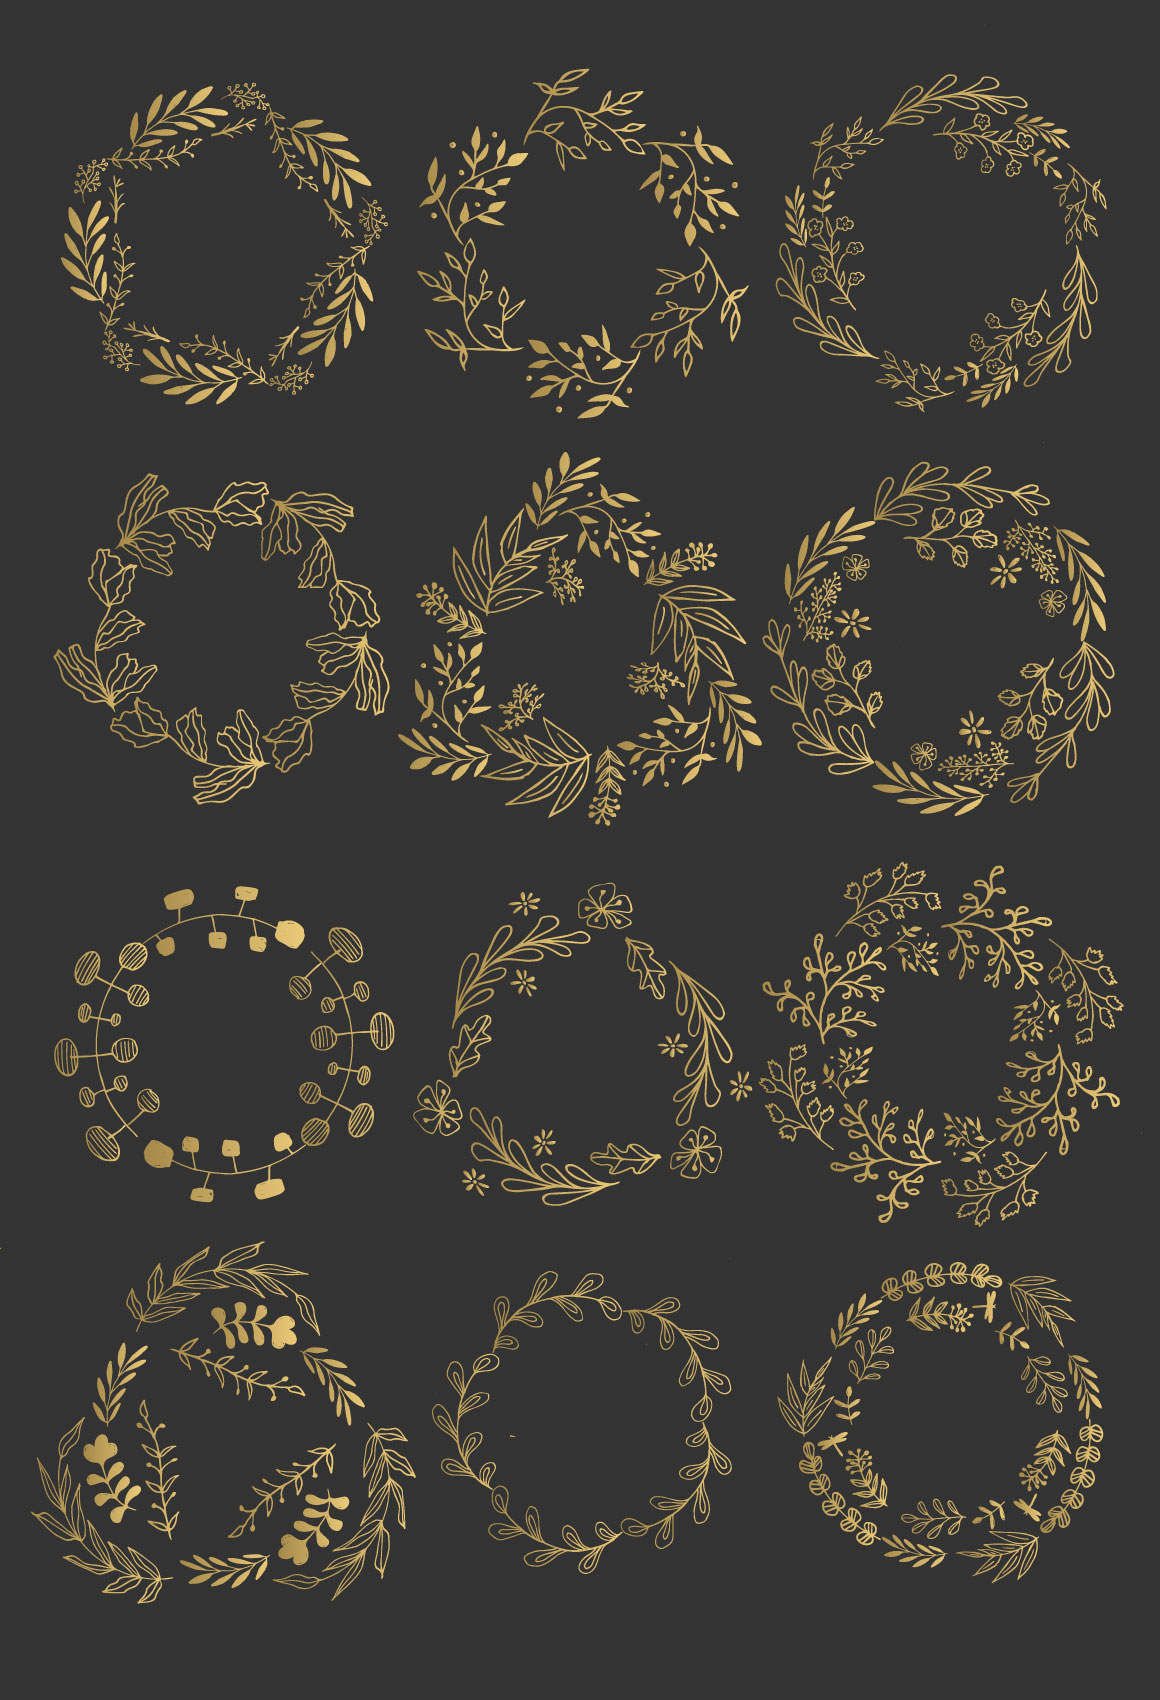 Wreaths and branches vol.2 example image 5